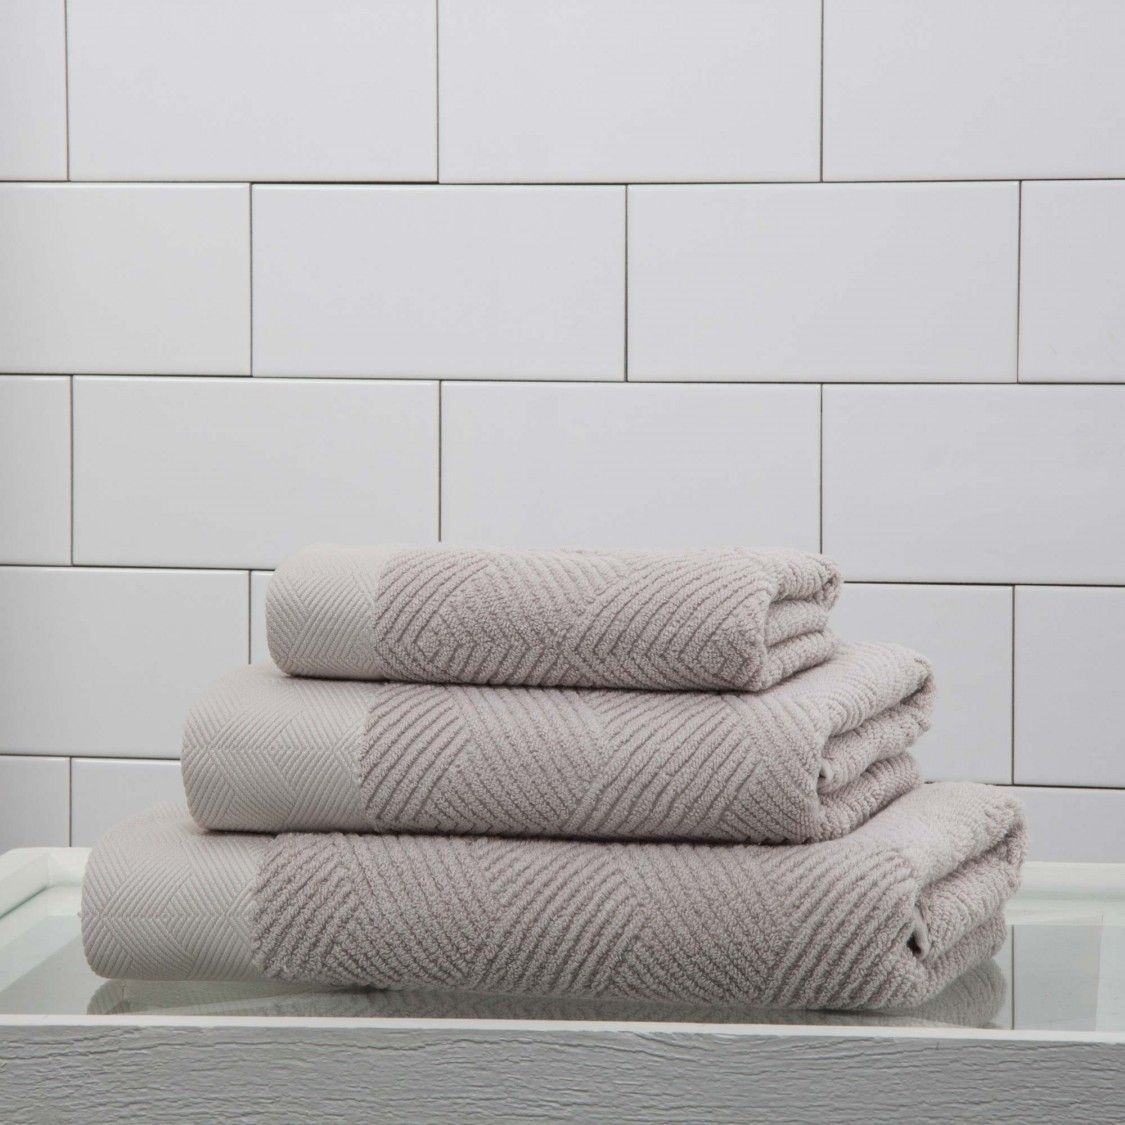 Diamonds Bath Towel Bath Sheets Towel Luxury Towels